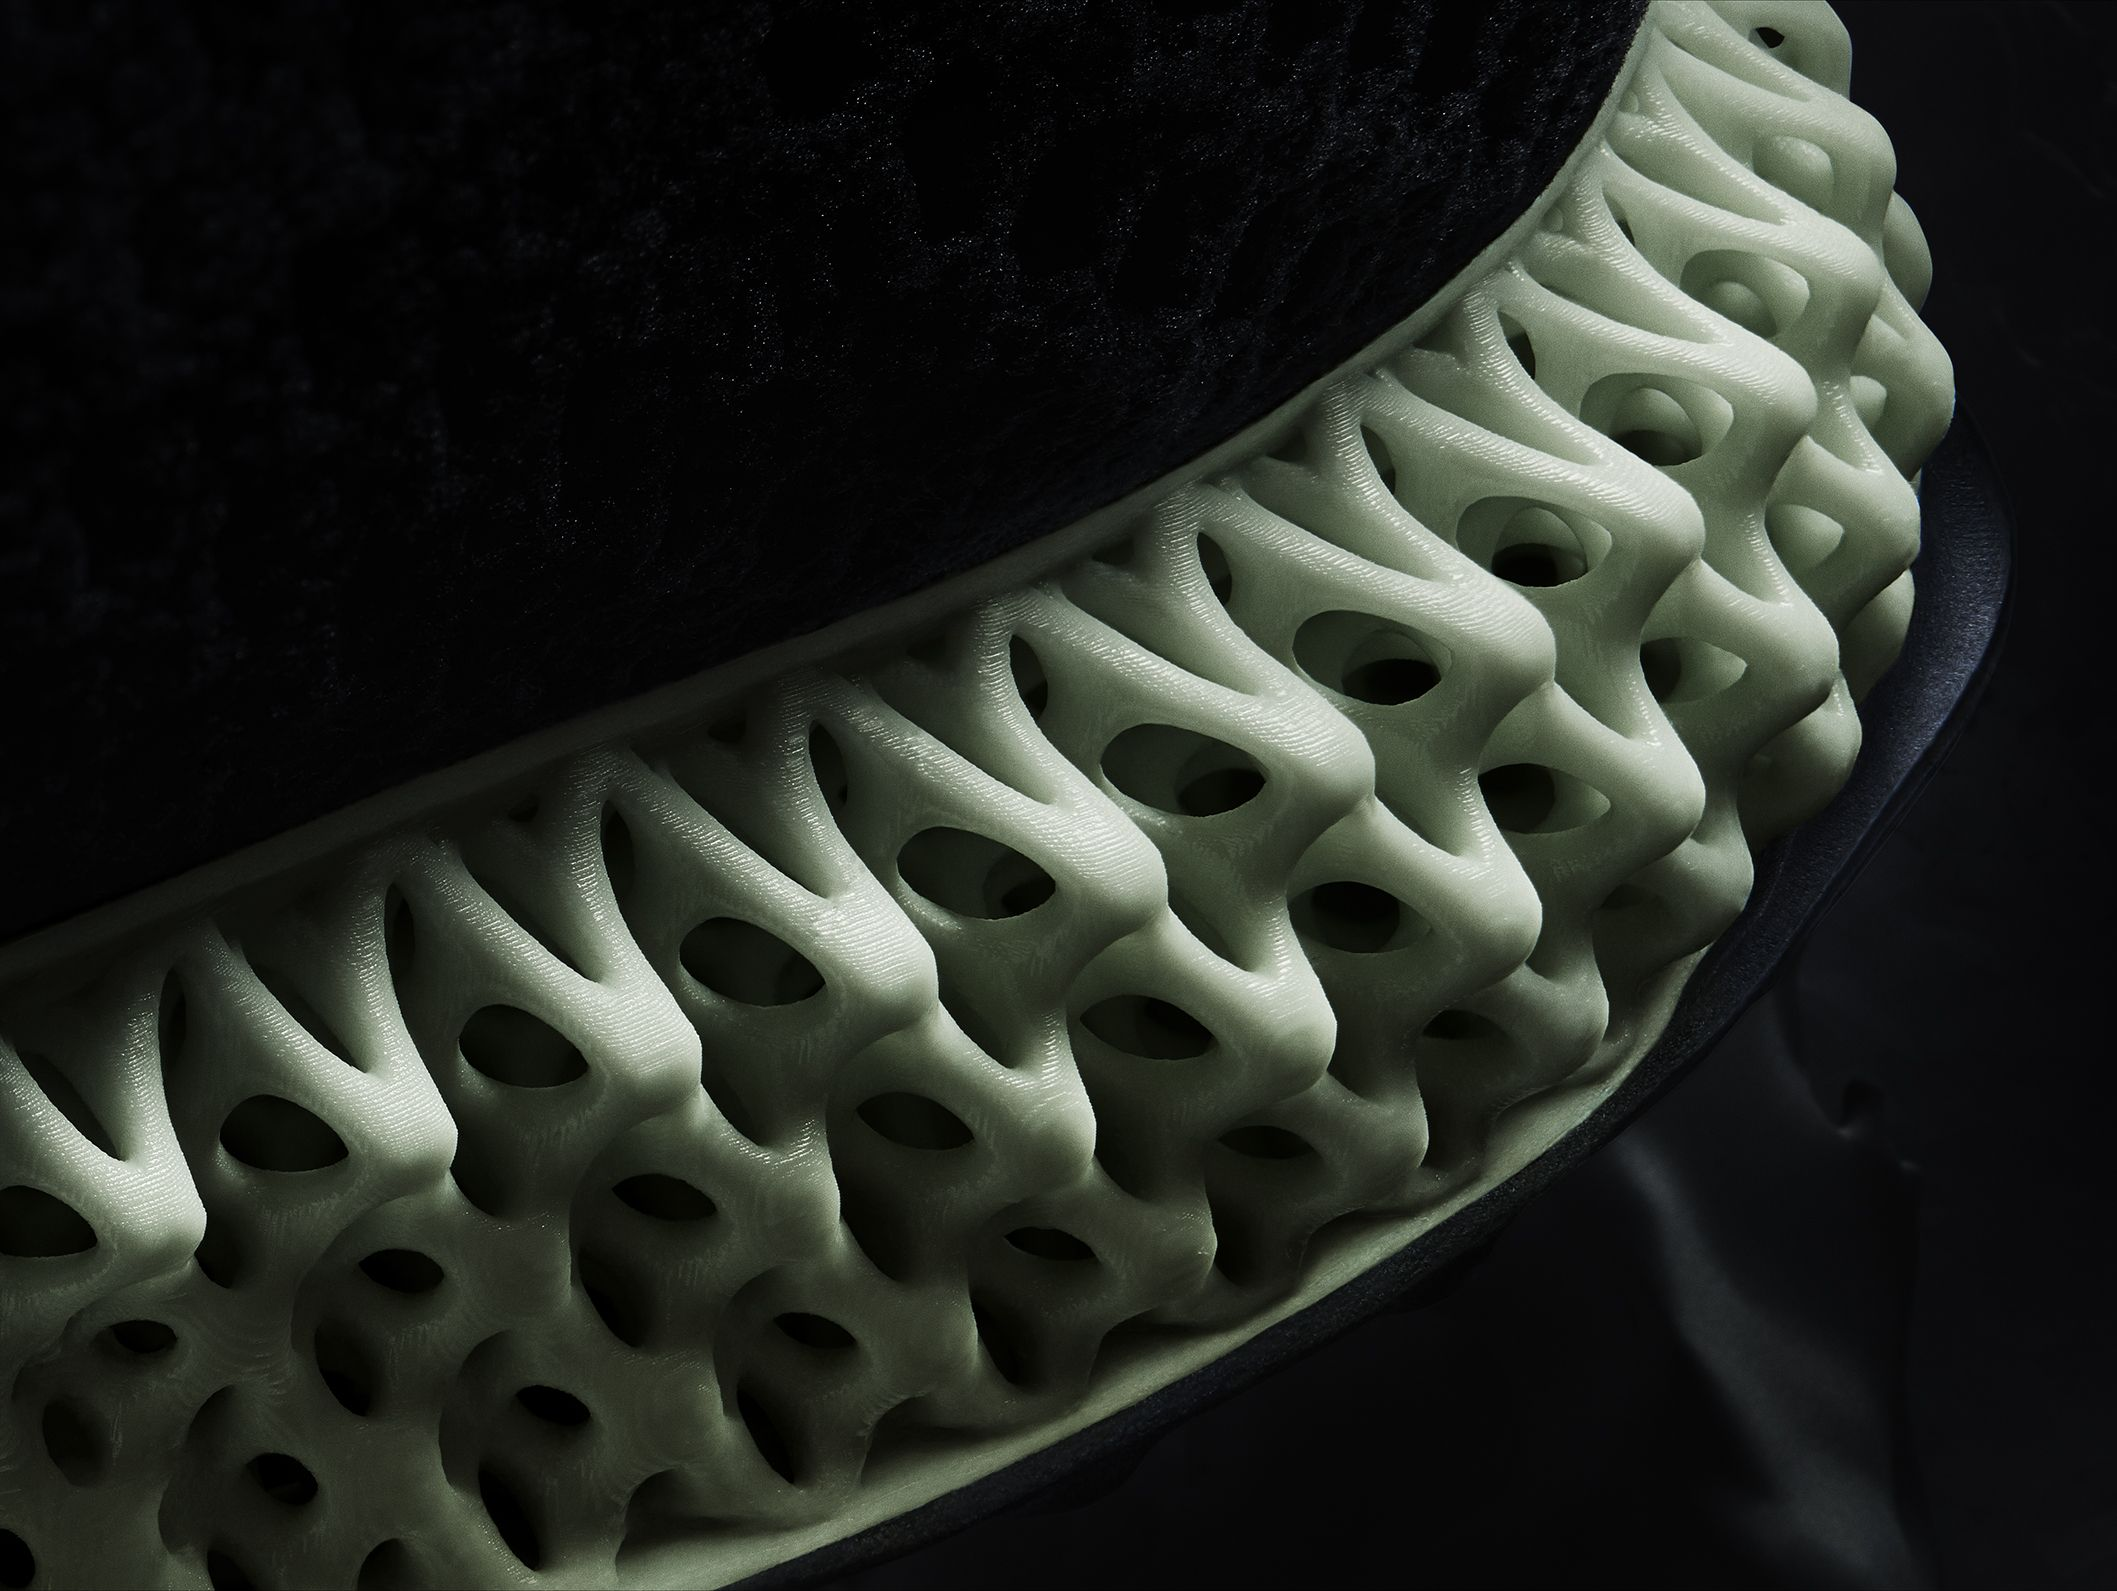 1f7b6ac43 Image result for adidas 4d 3d printed shoe